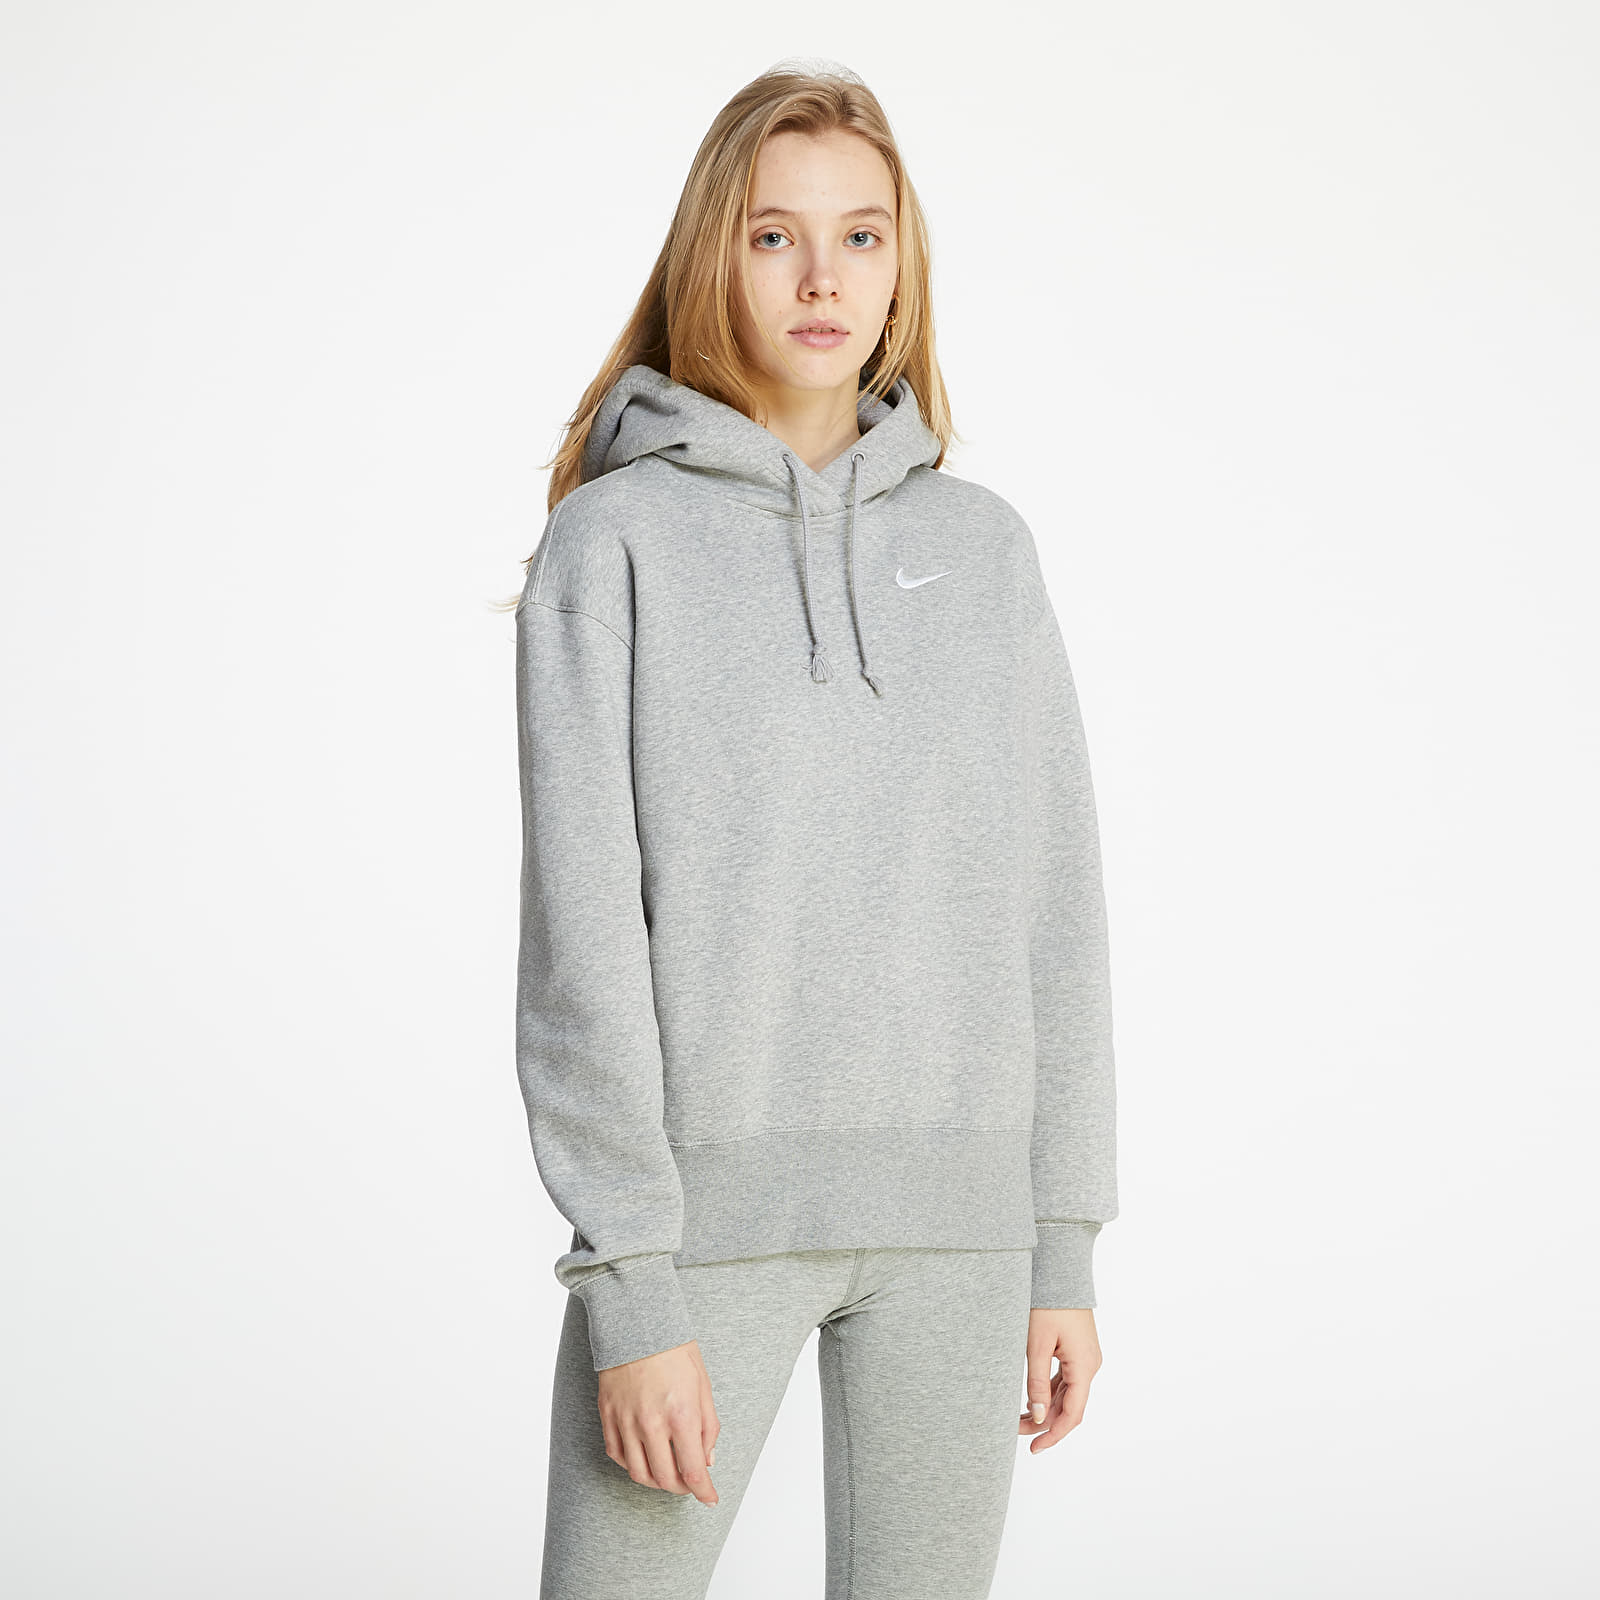 Nike Sportswear Hoodie Fleece Trend Dk Grey Heather/ White